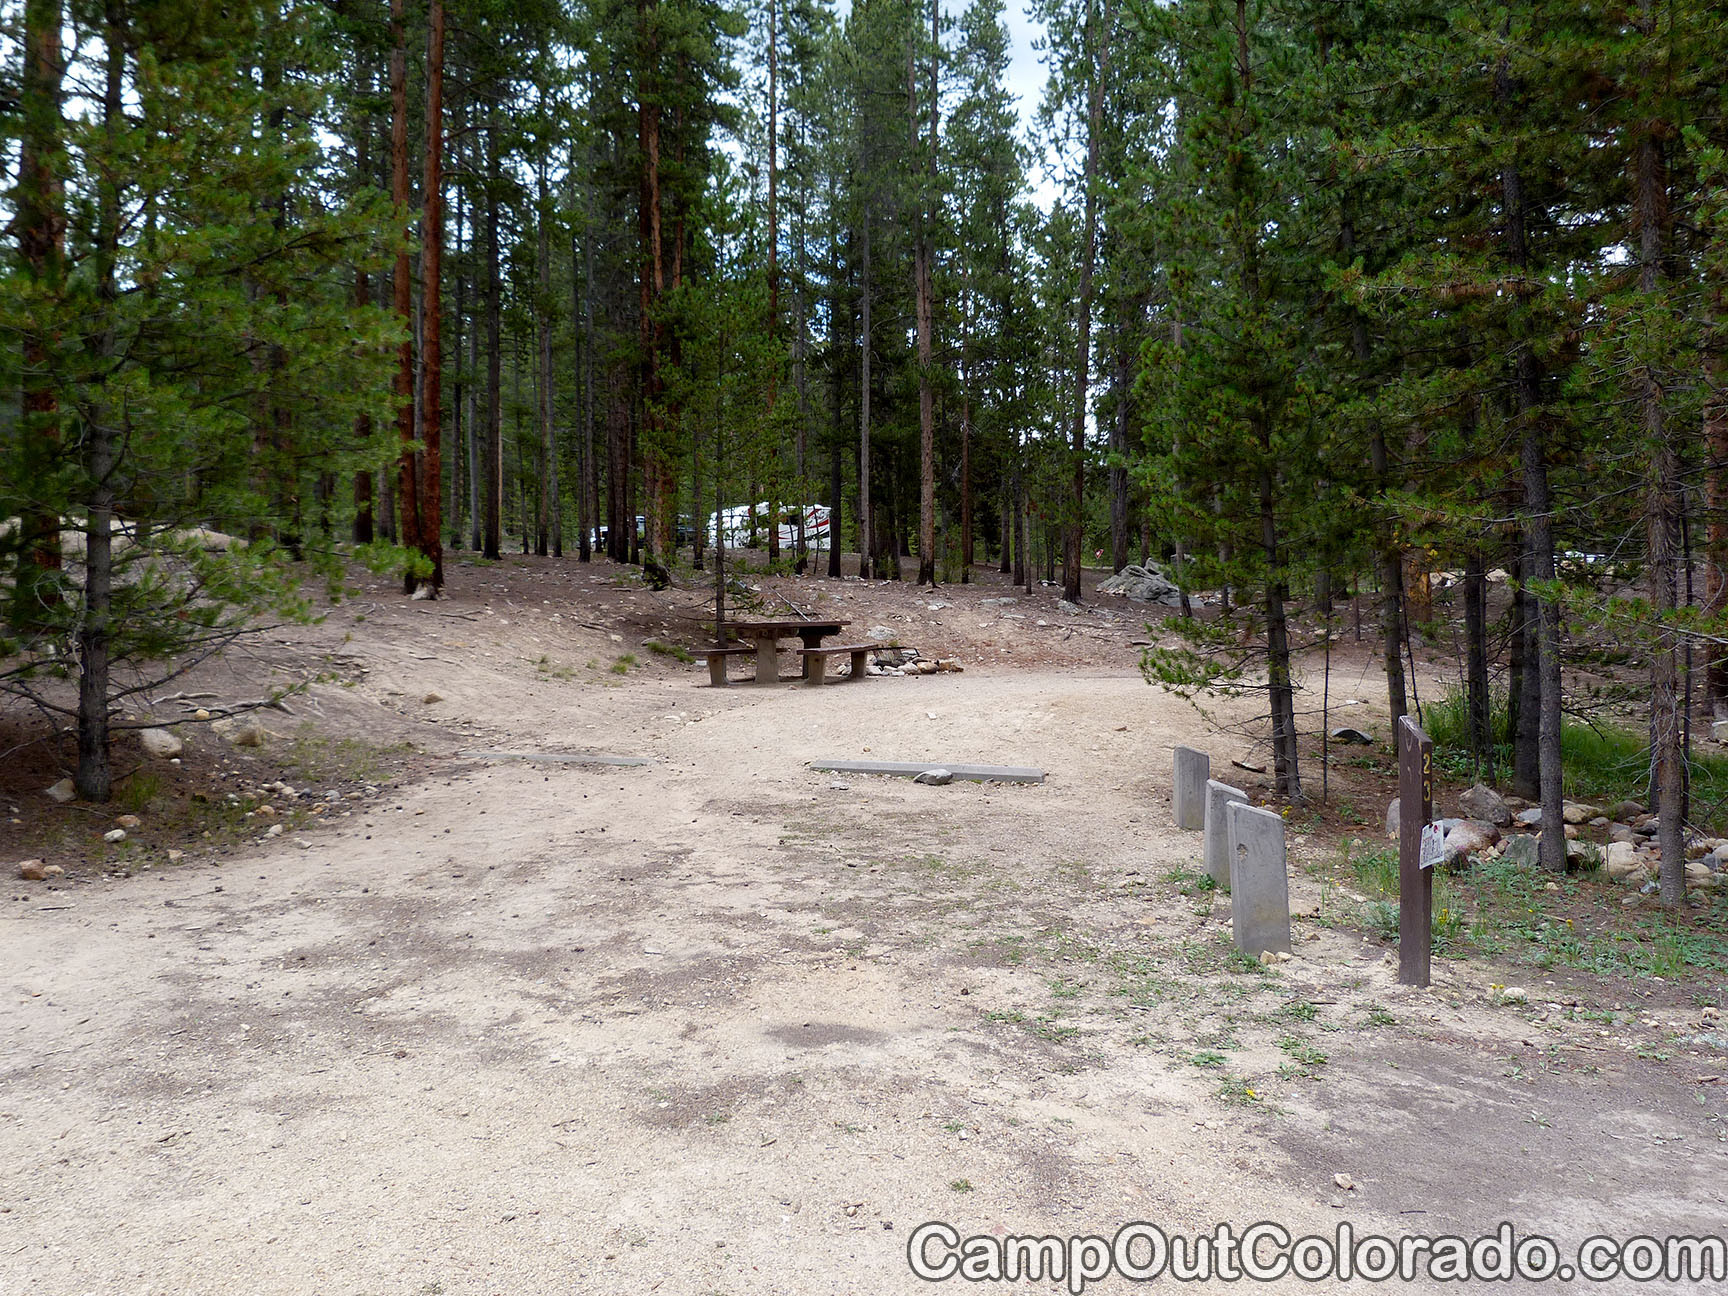 Camp-out-colorado-molly-brown-turquoise-lake-open-camp